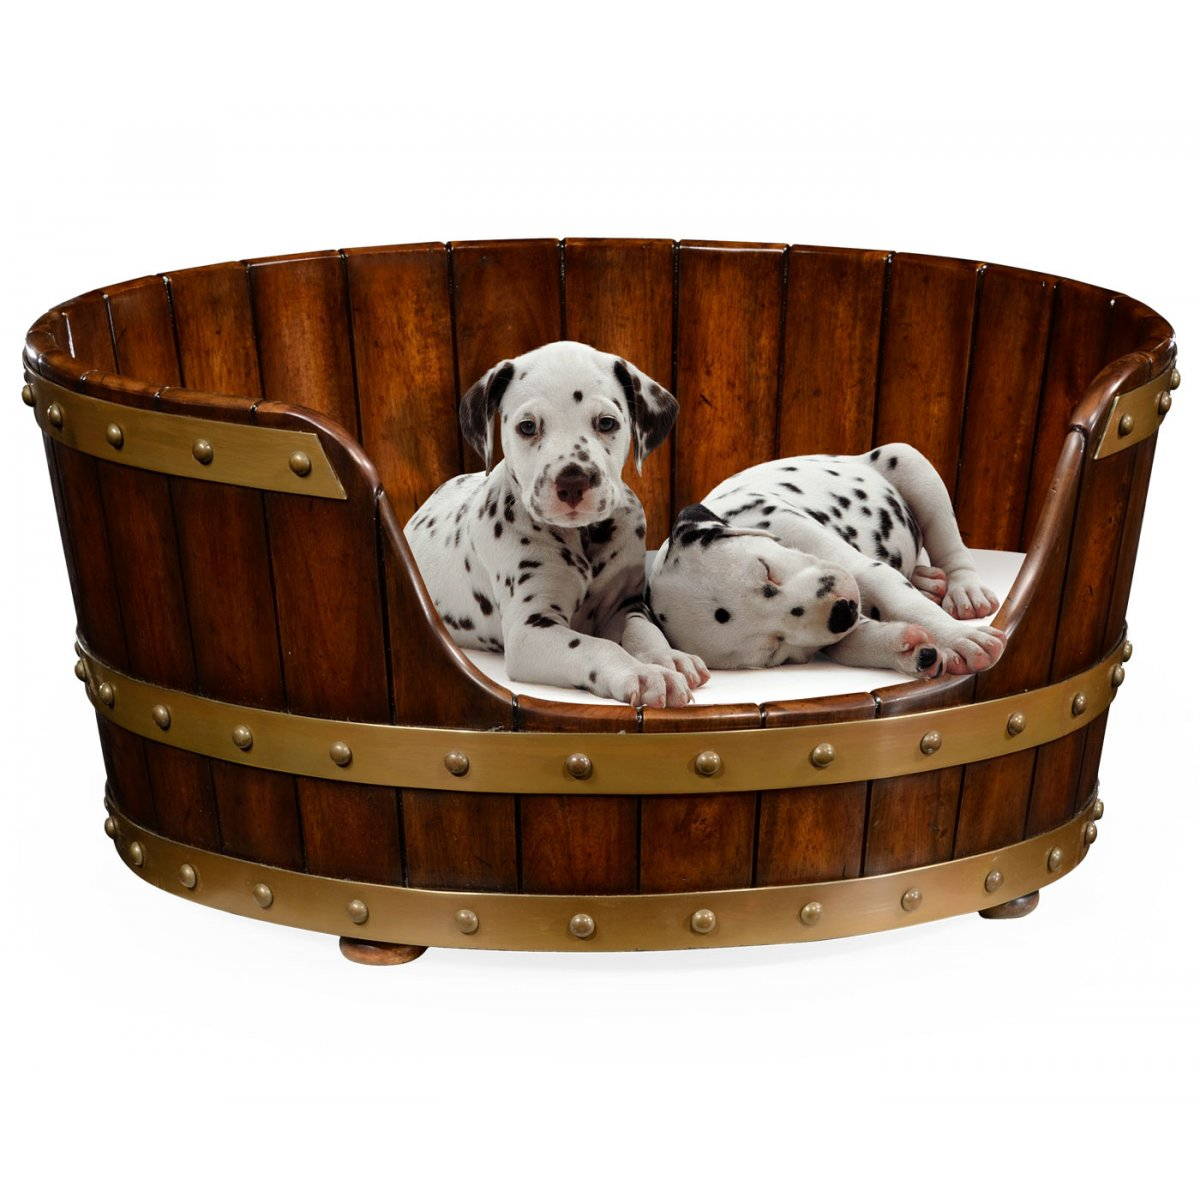 Luxury dog bed small size 25 39 39 swanky interiors - Designer pet beds small dogs ...